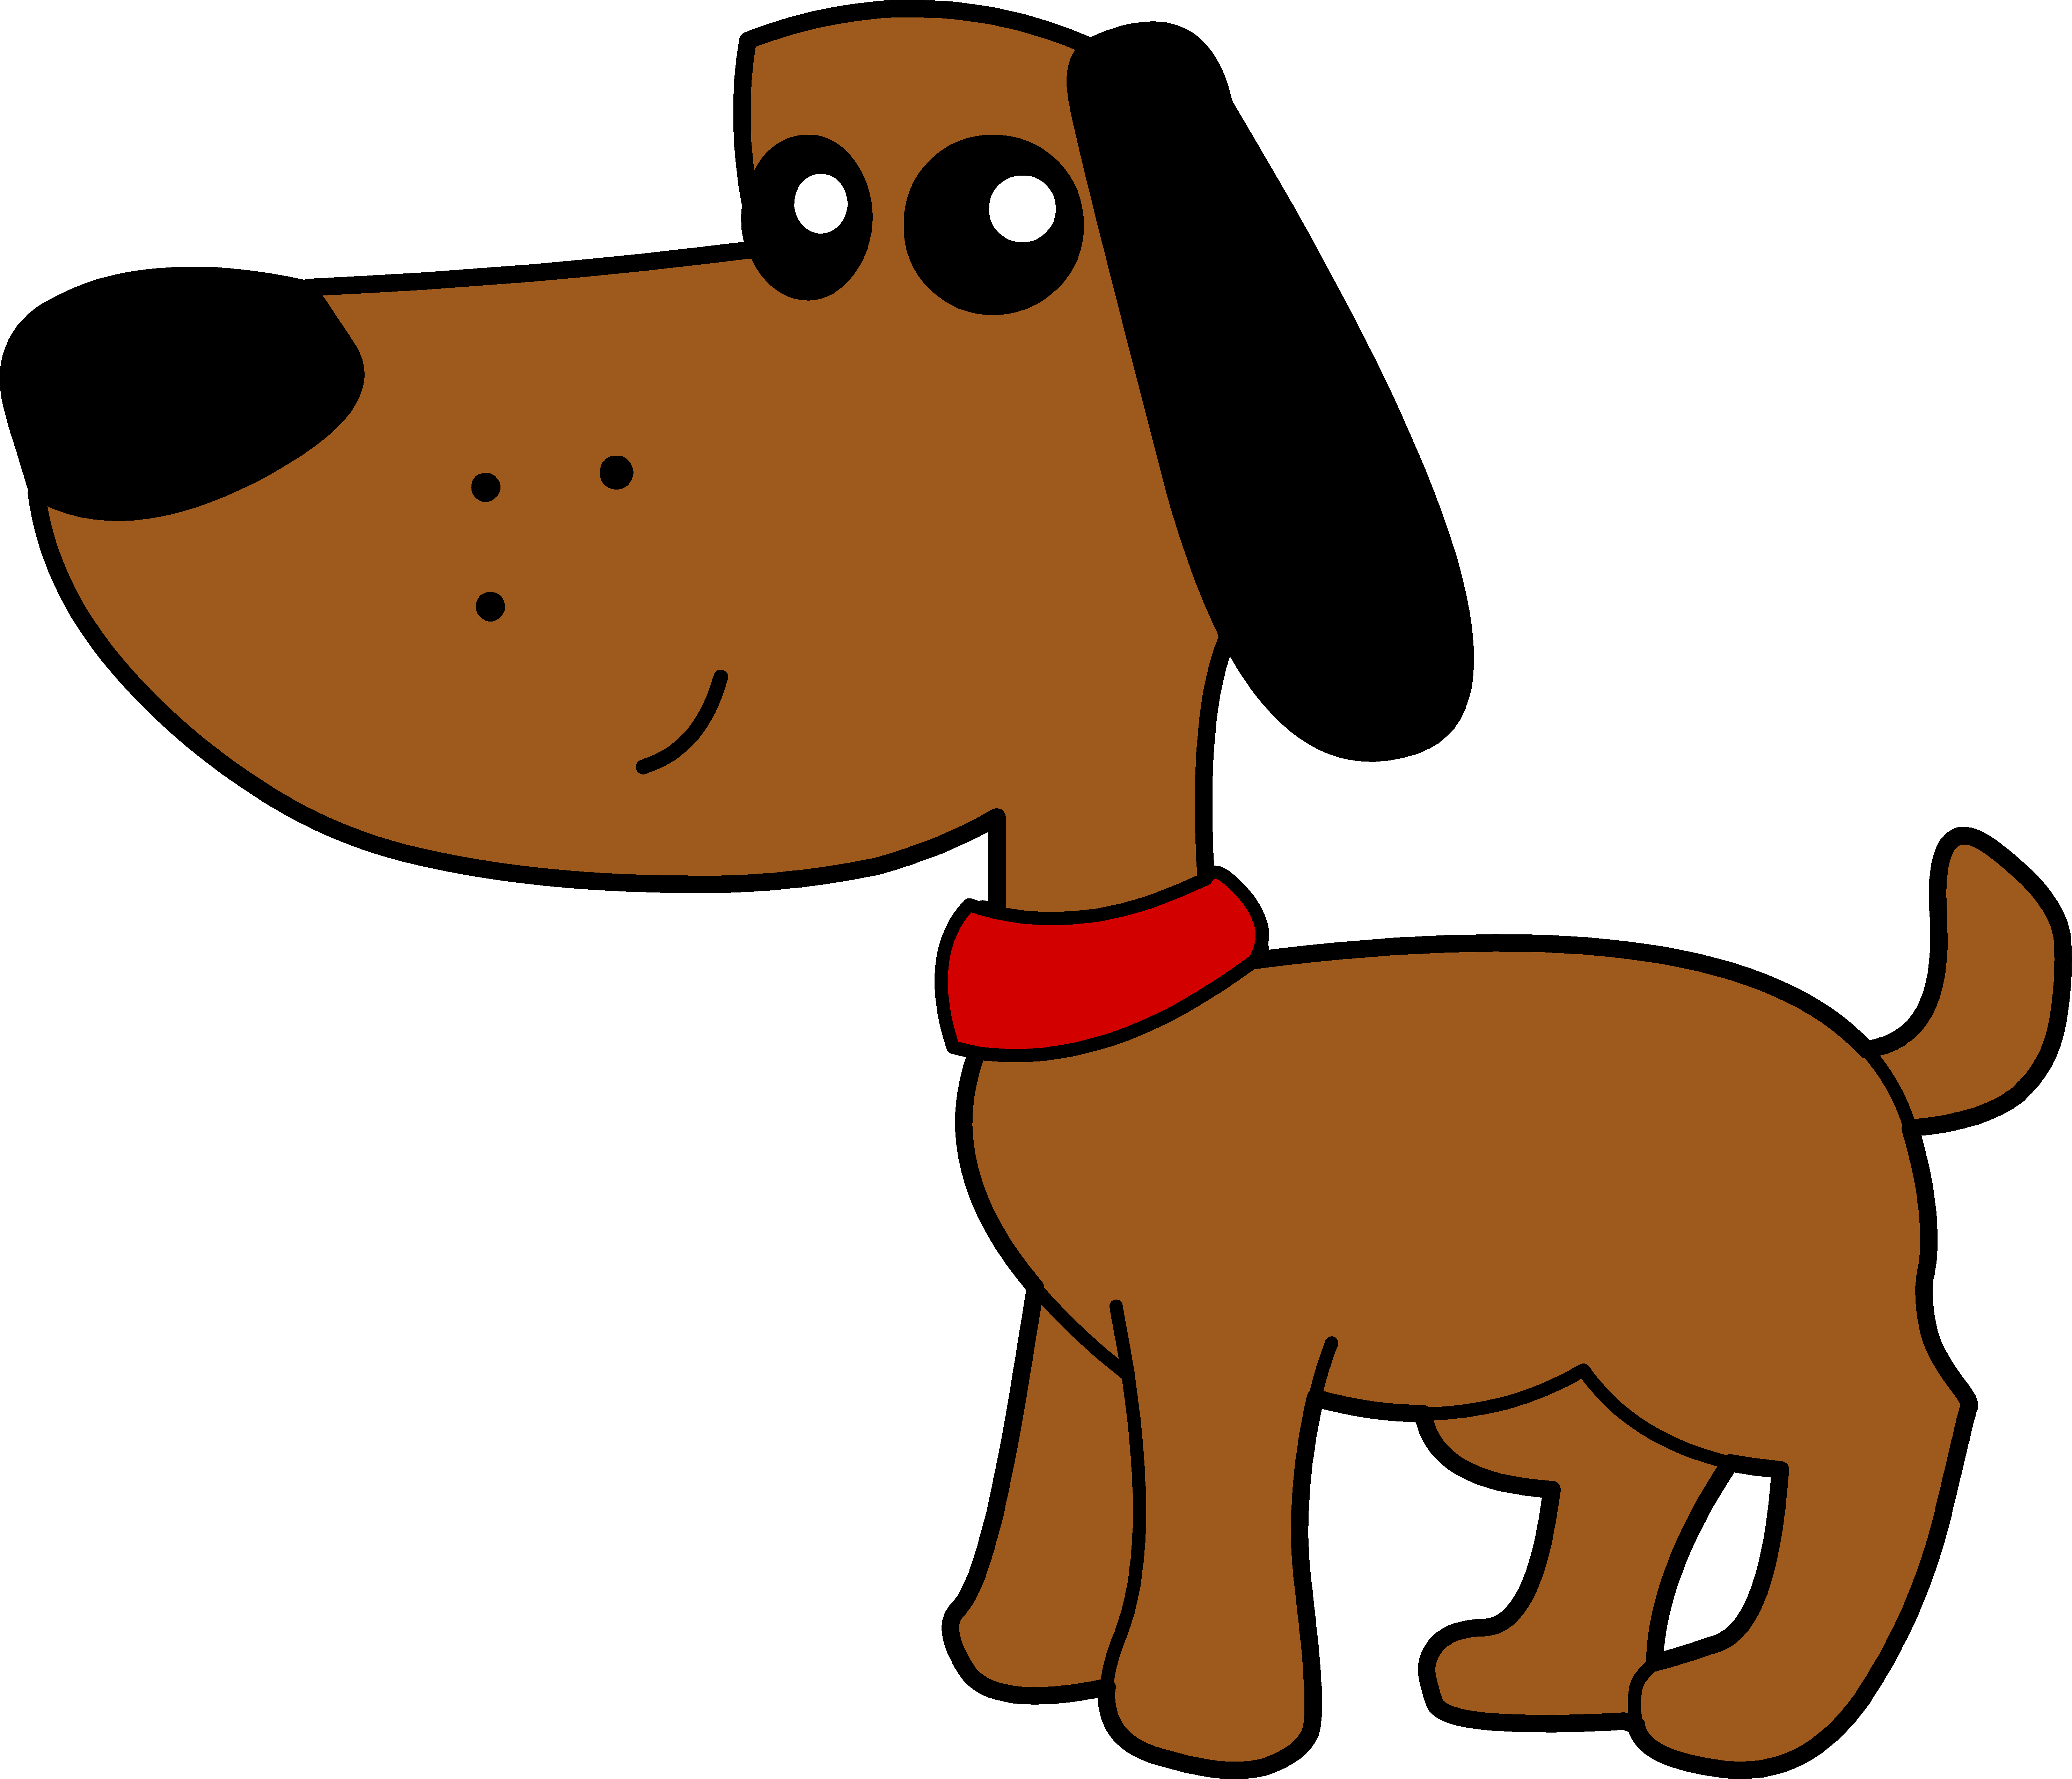 clipart dogs - Clipart Of A Dog